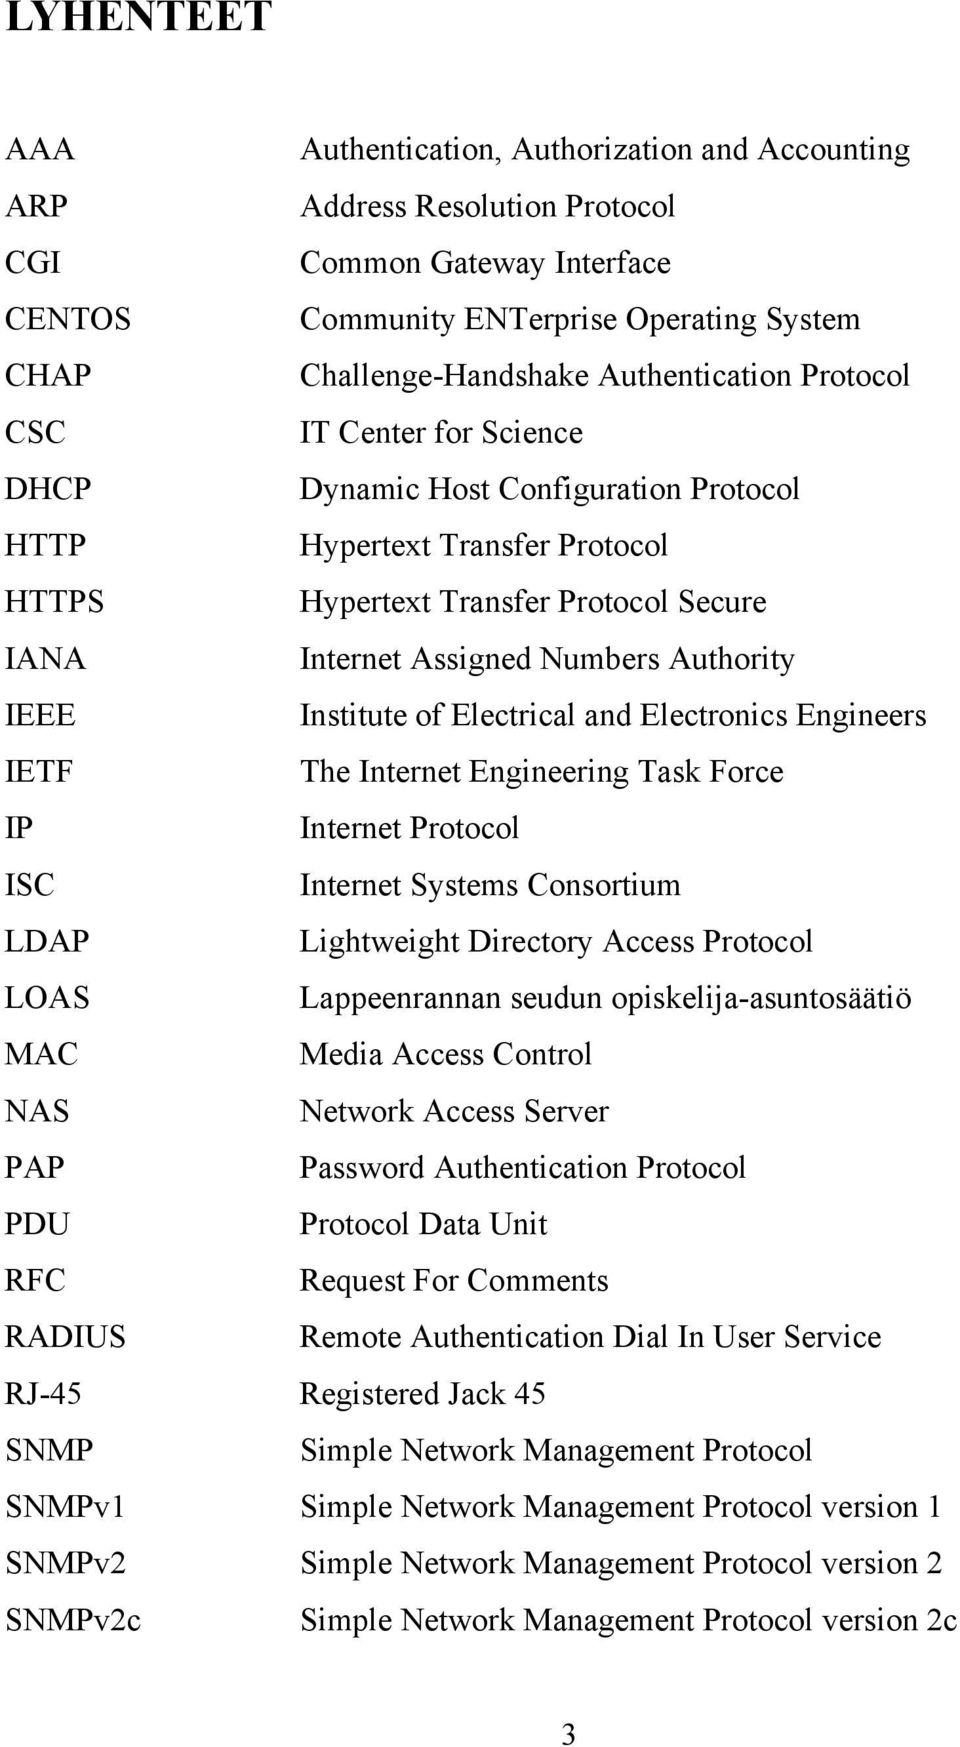 Authority IEEE Institute of Electrical and Electronics Engineers IETF The Internet Engineering Task Force IP Internet Protocol ISC Internet Systems Consortium LDAP Lightweight Directory Access